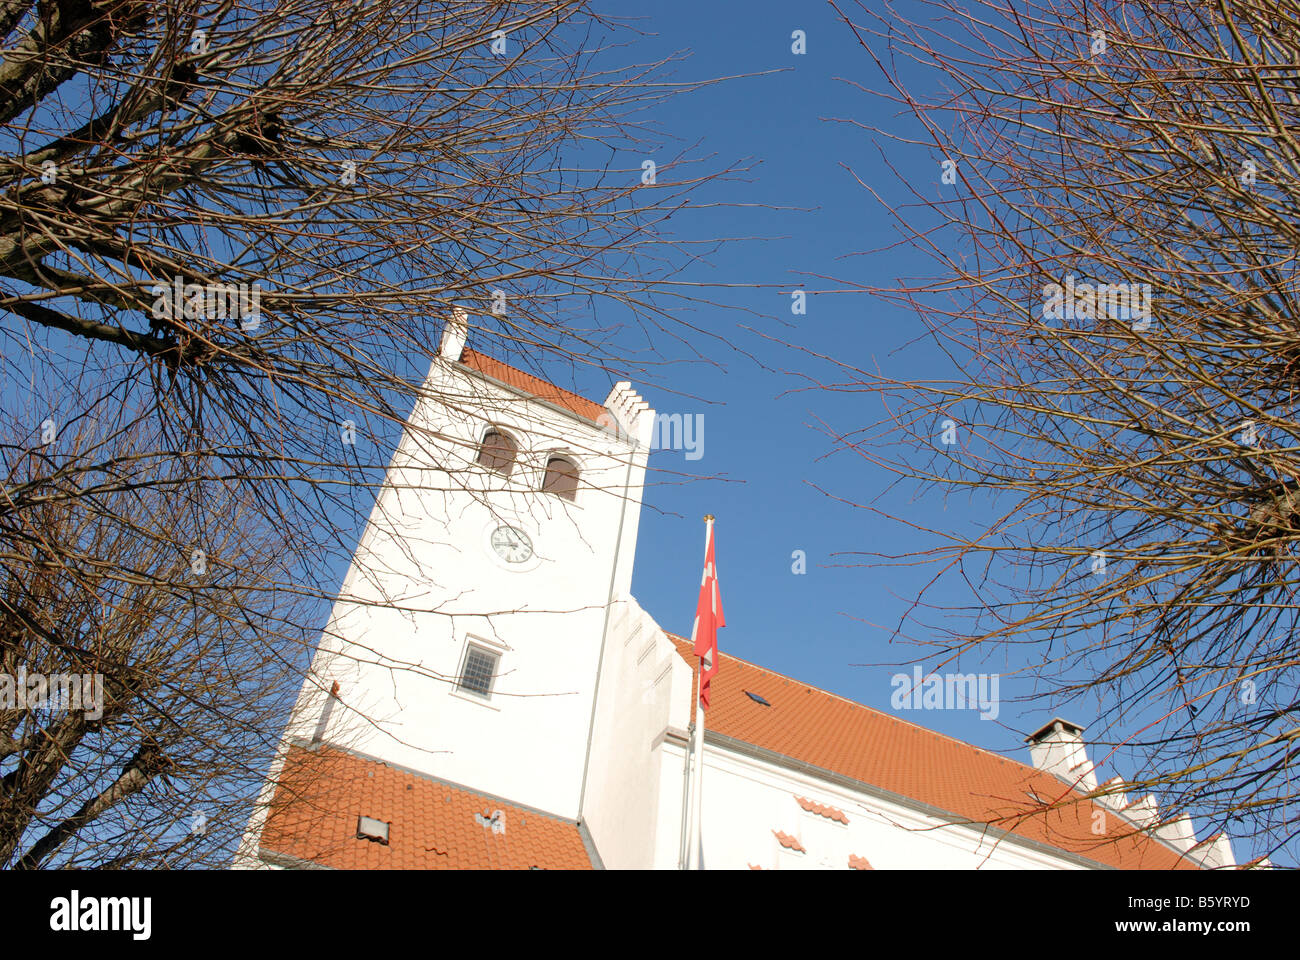 CHURCH IN DENMARK - Stock Image